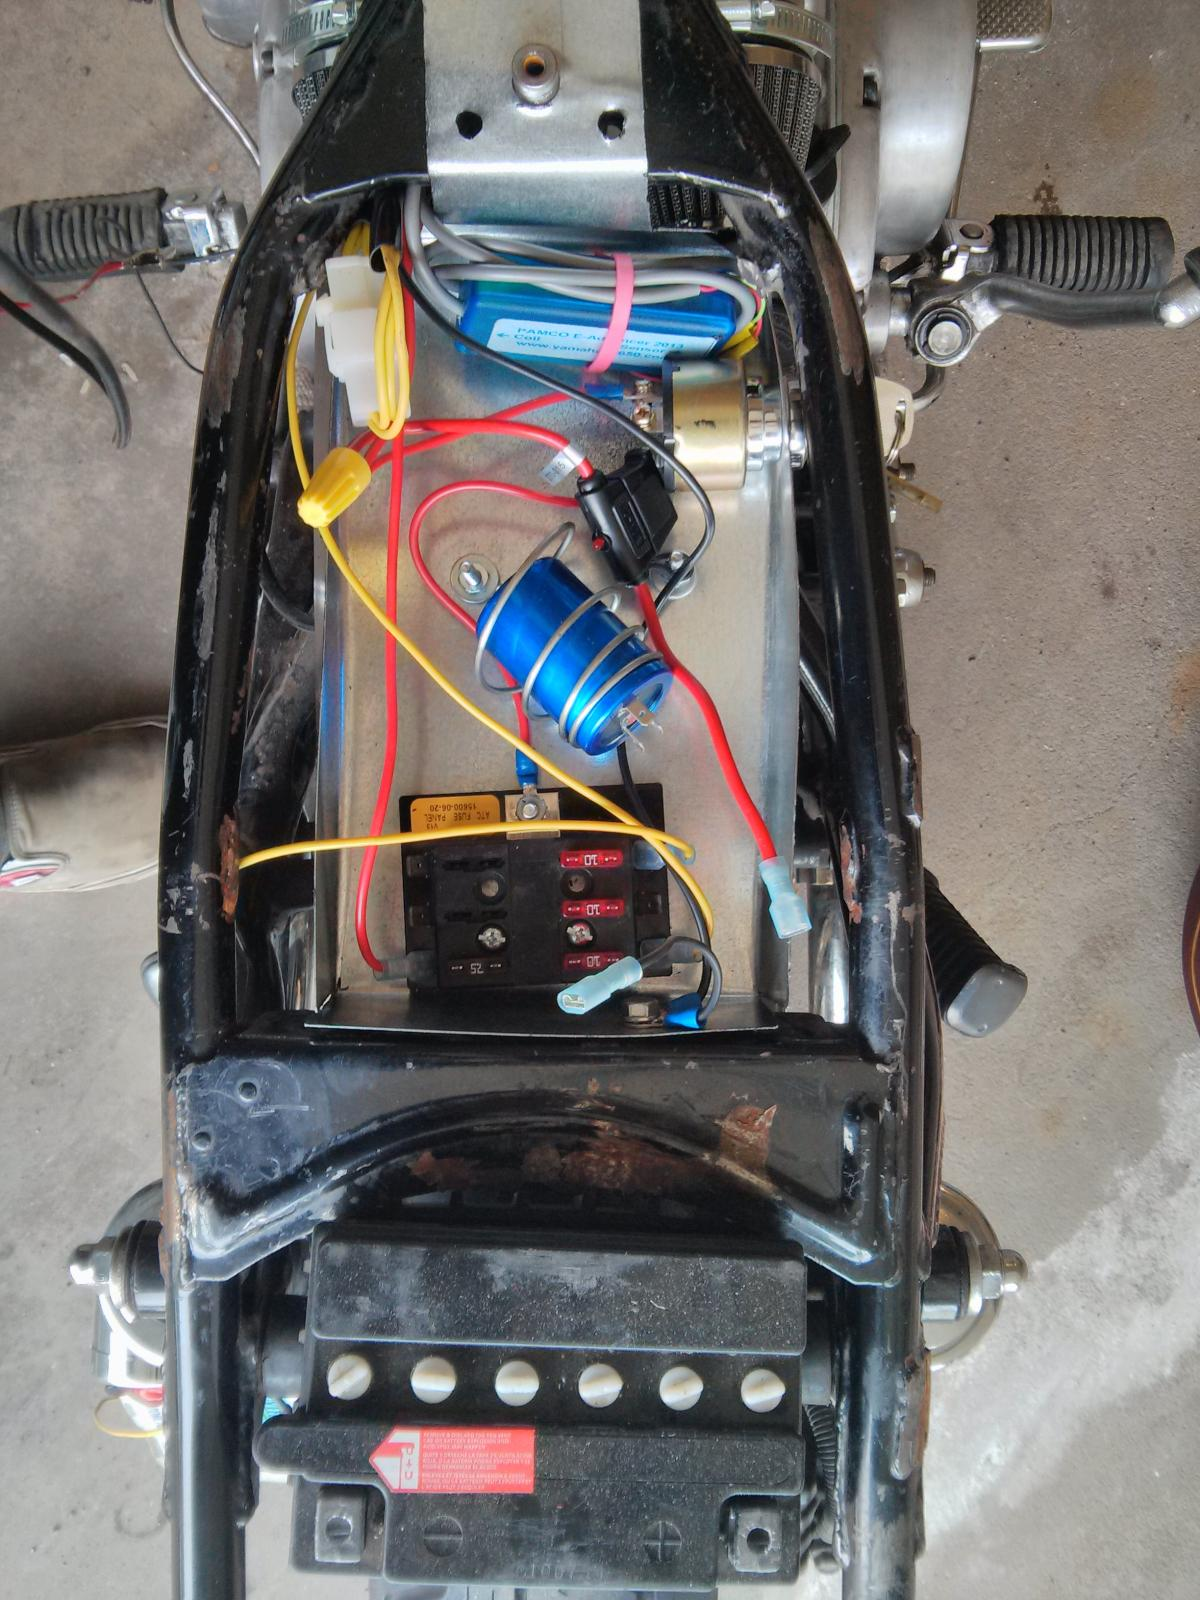 Kickstart Only Wiring Diagram 29 Images Kick Start And A Diargam For Dummies Yamaha Xs650 Forum